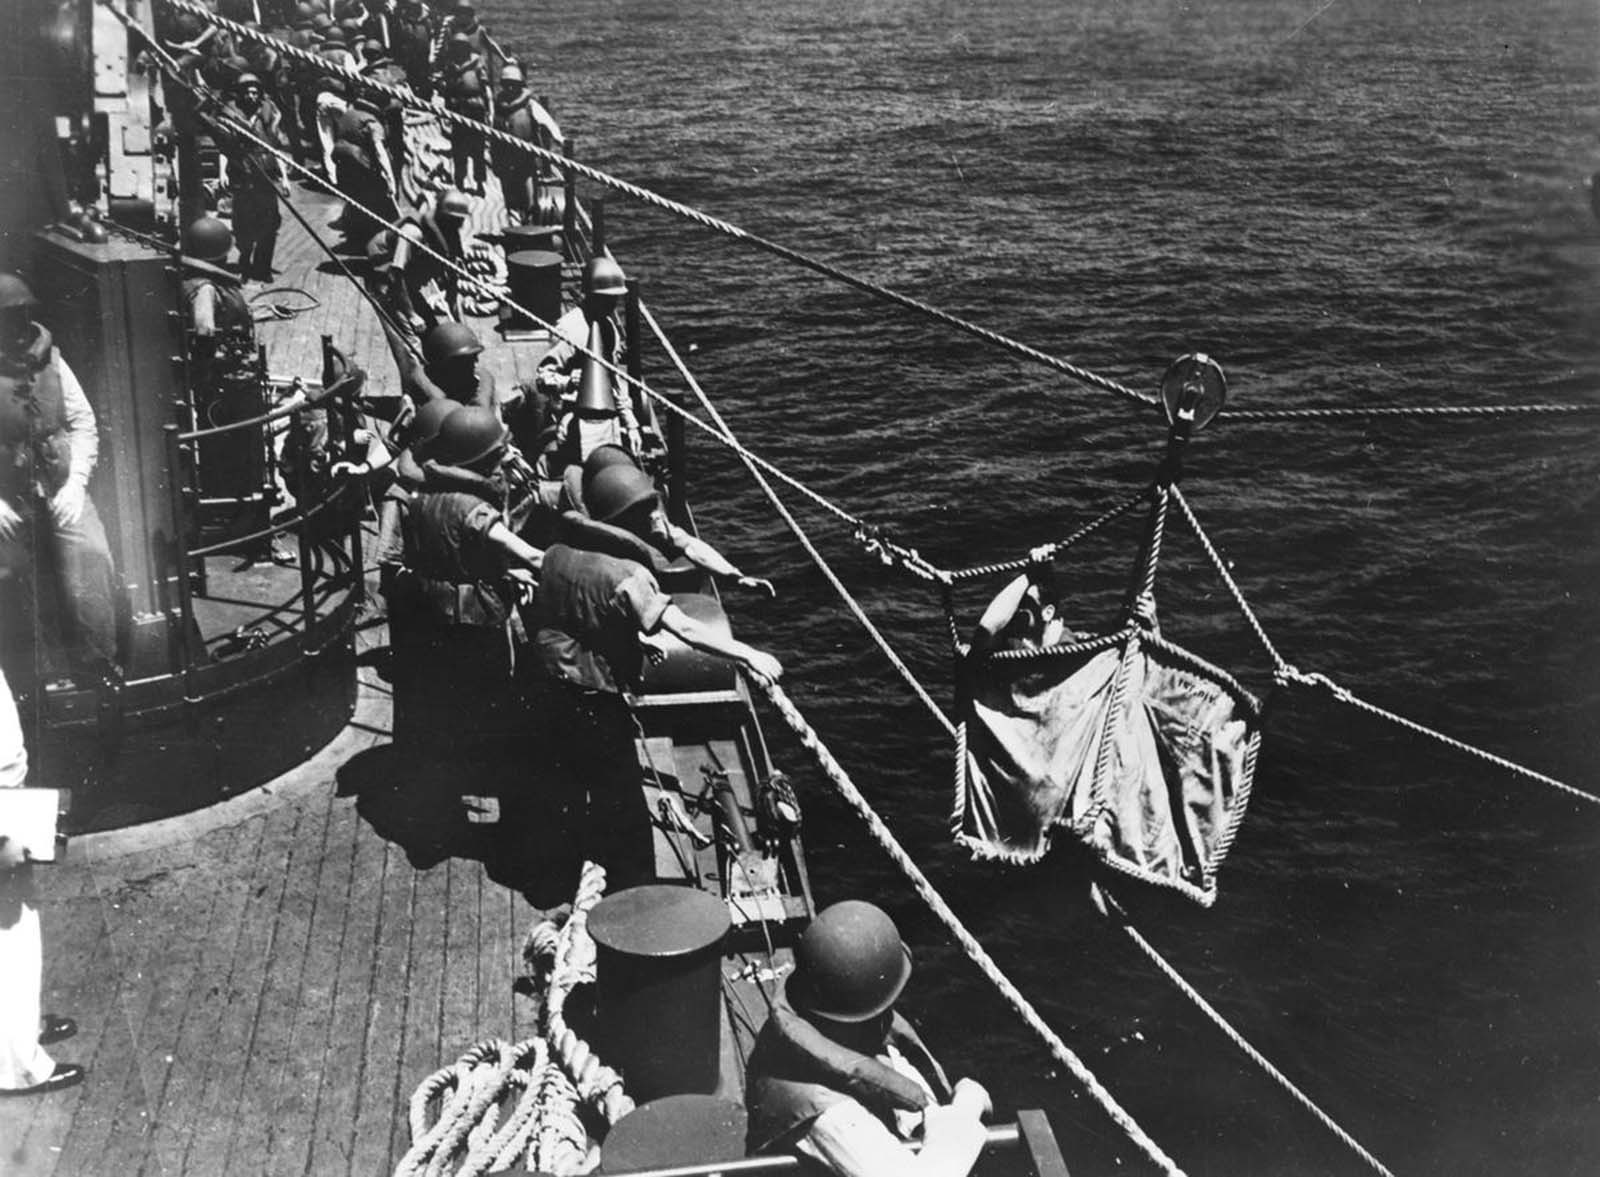 A U.S. seaman, wounded during the Battle of Midway, is transferred from one warship to another at sea in June of 1942.